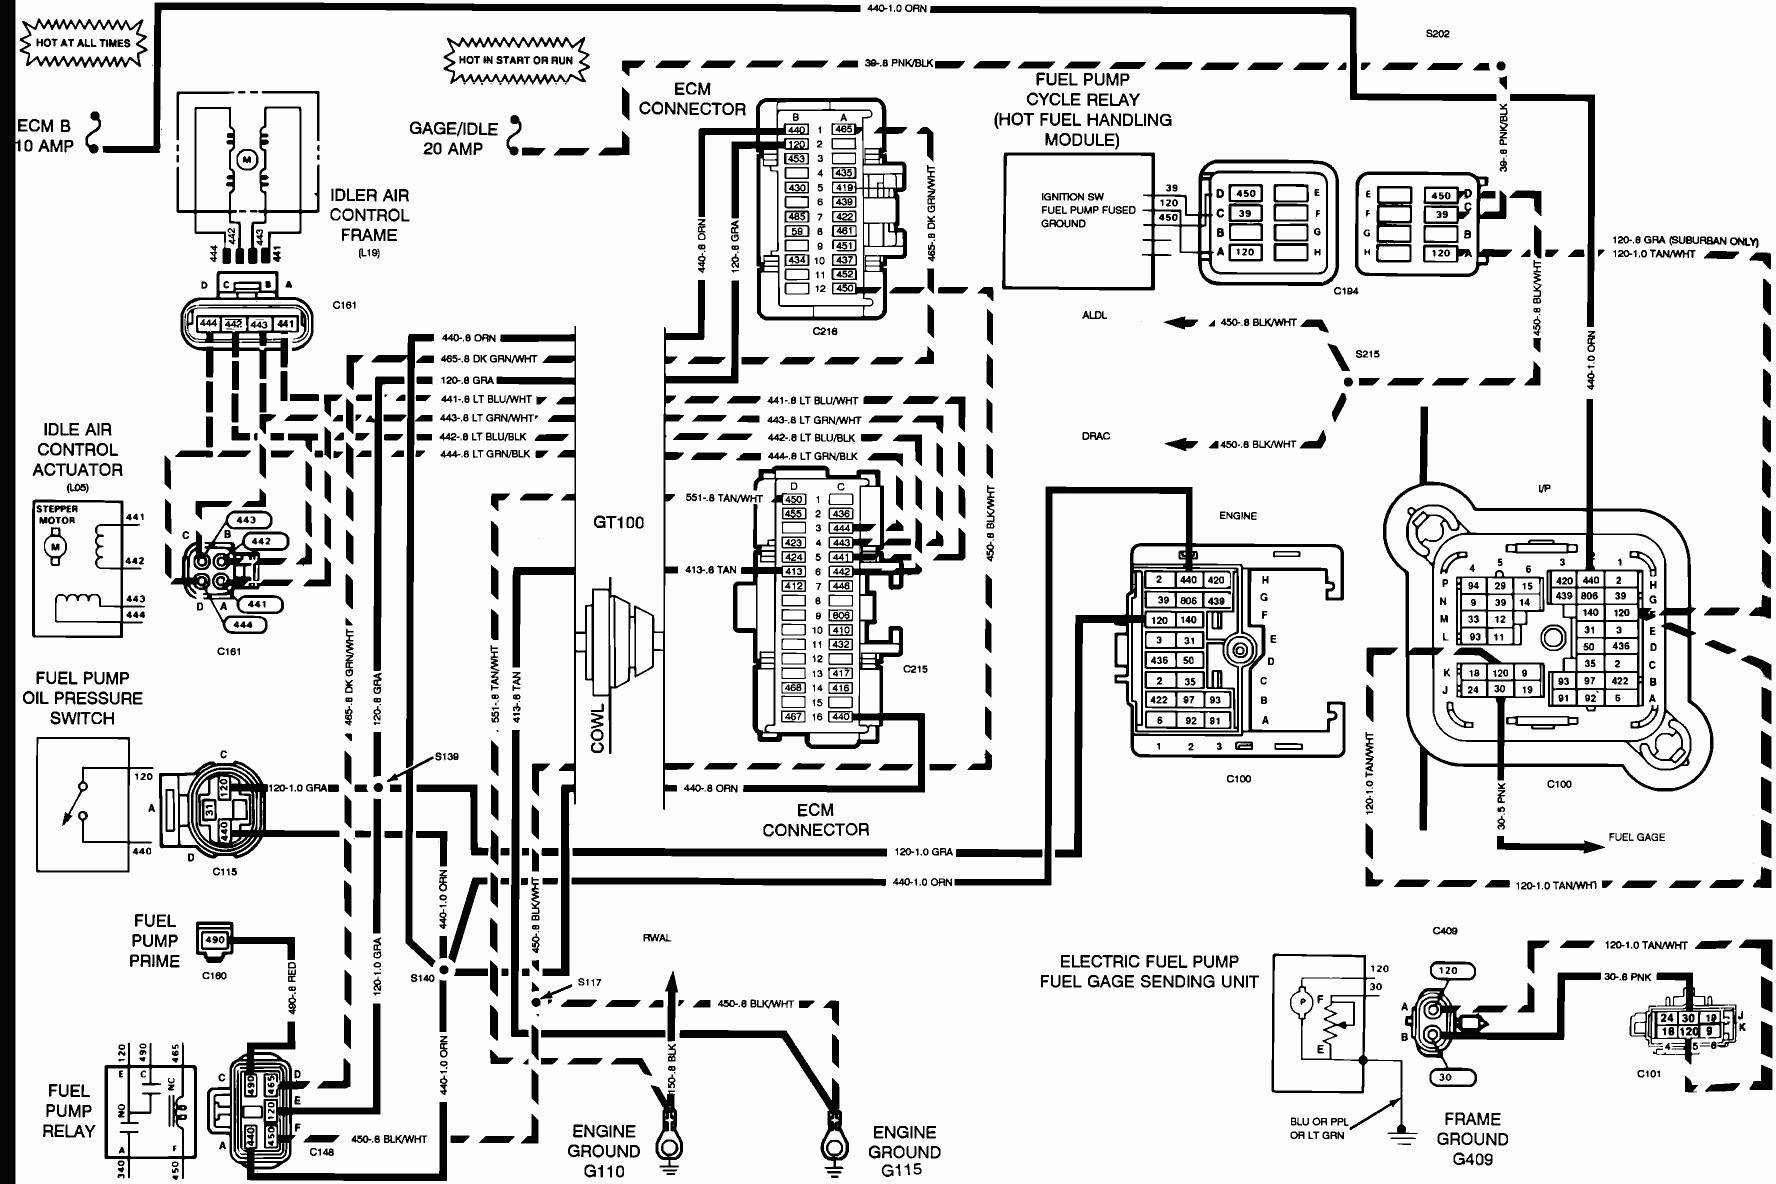 [DIAGRAM] 1998 Freightliner Wiring Diagram FULL Version HD